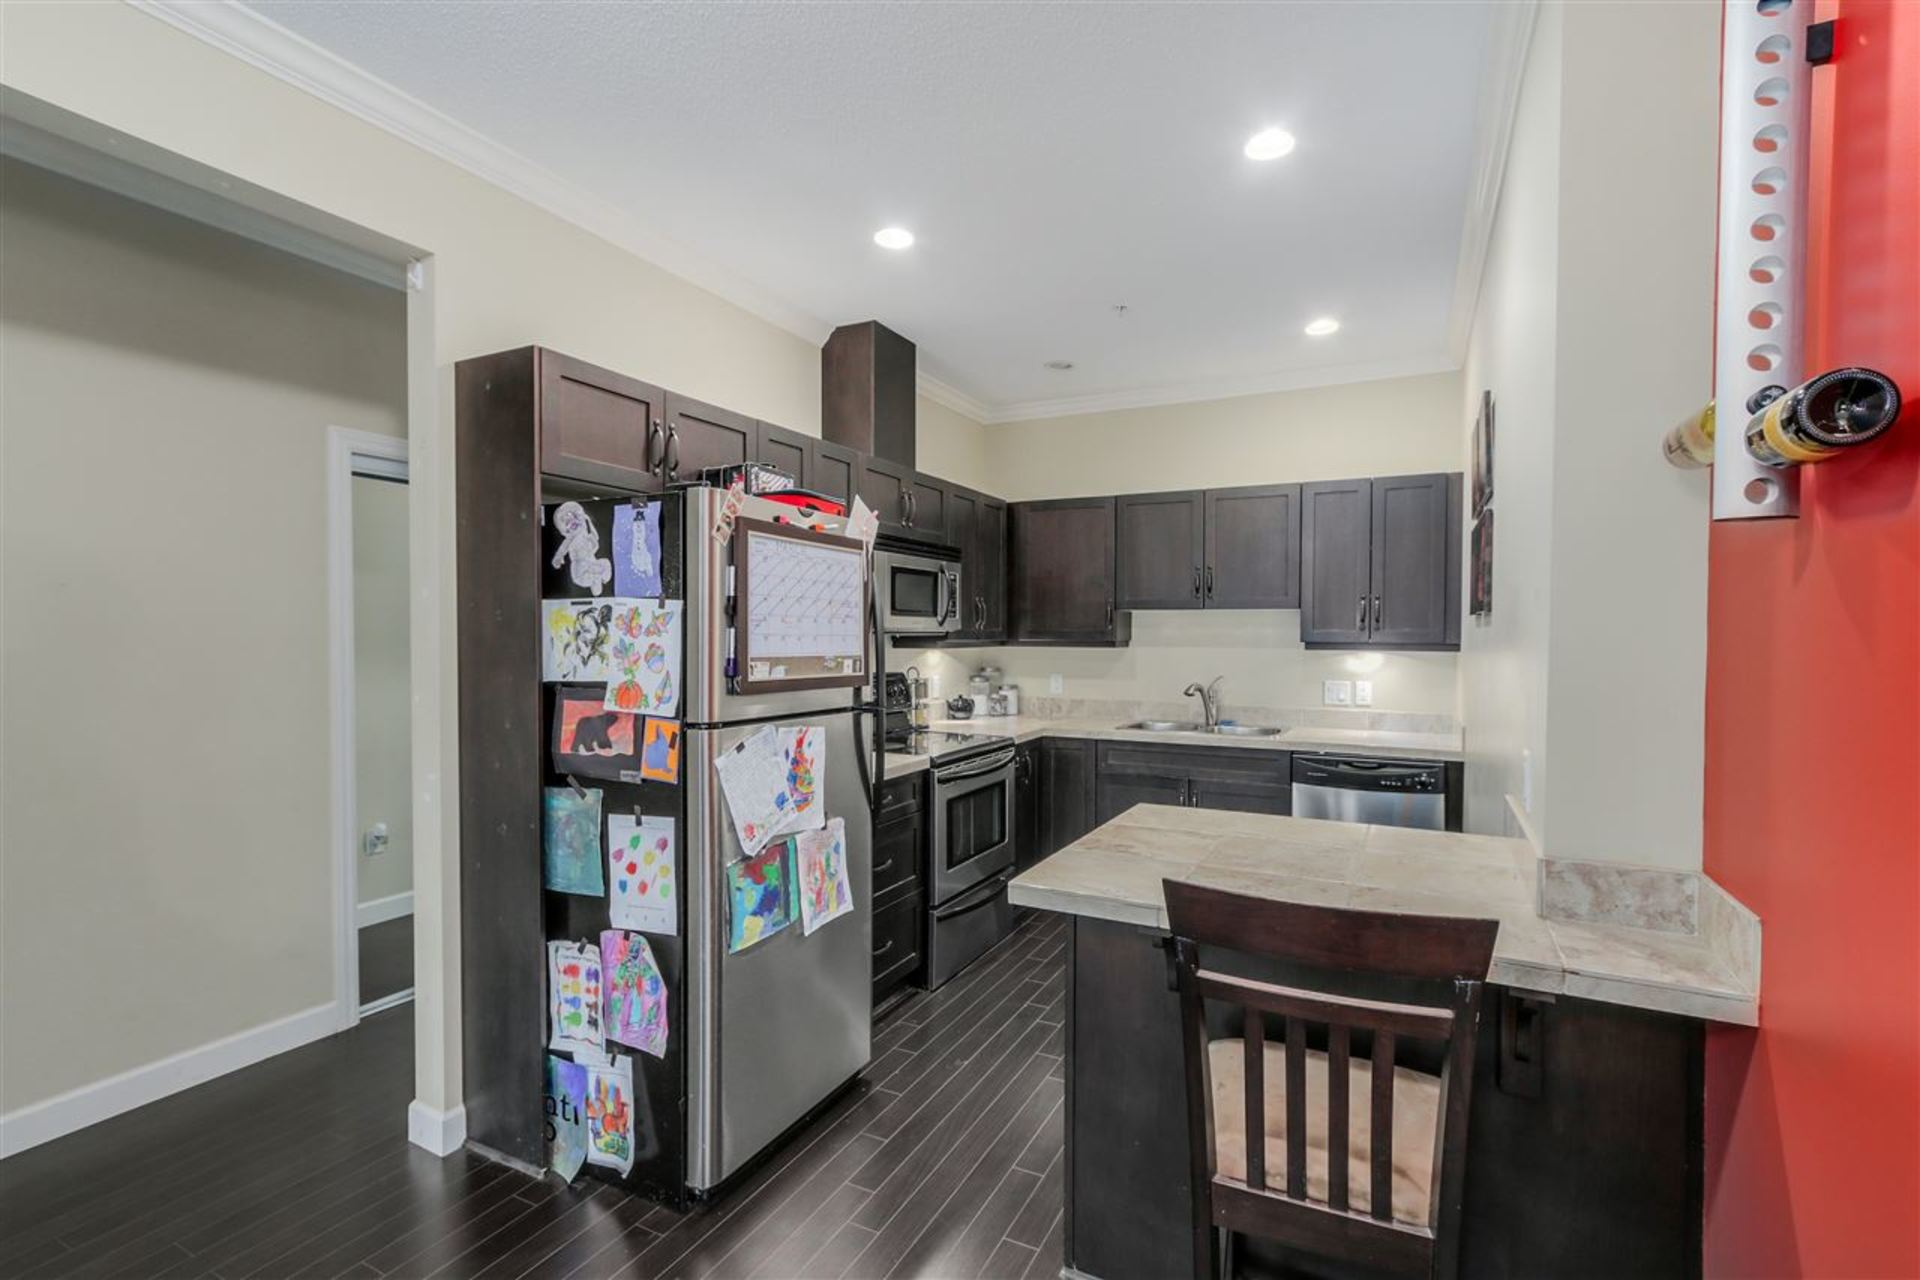 2ee9a416868661e31eaa6275d19c13be at 306 - 20281 53a Avenue, Langley City, Langley